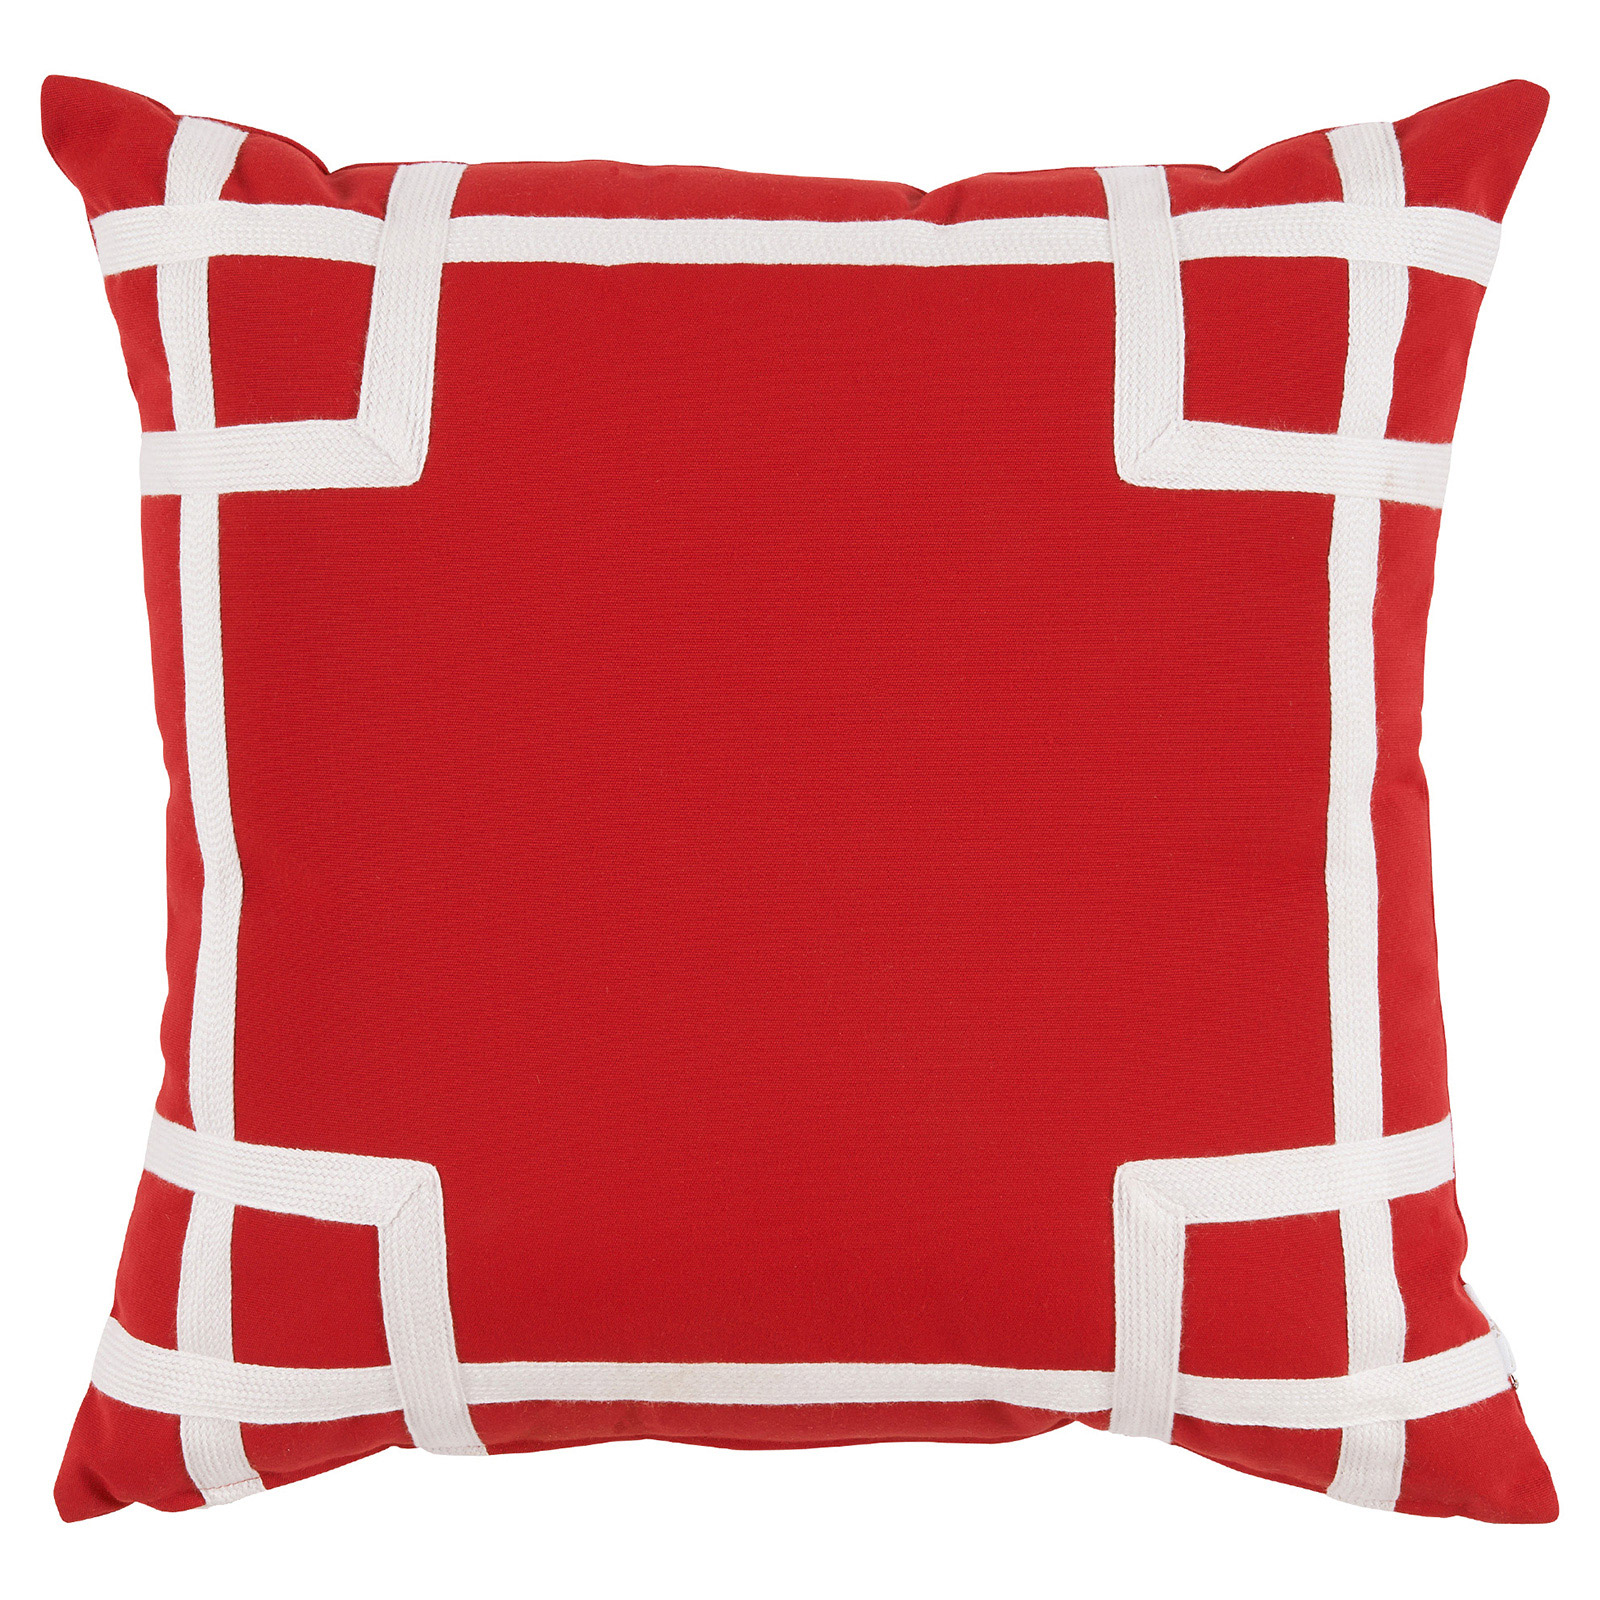 Paton Classic Outdoor Red Trellis Trim Pillow - 20x20